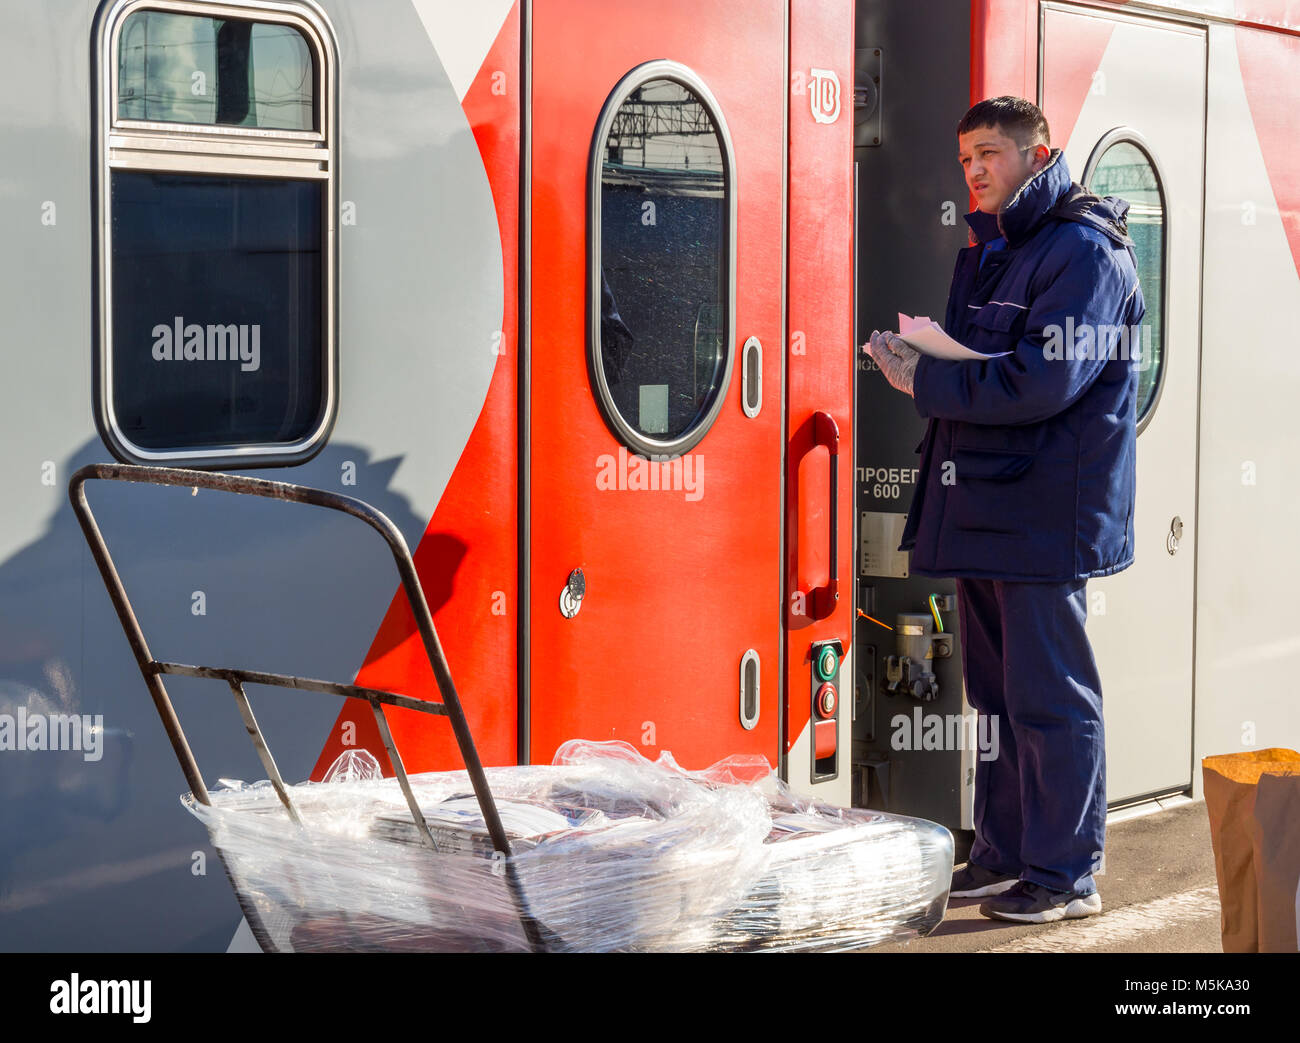 Voronezh, Russia - April 24, 2017: Delivery of the press to the railway car of the train - Stock Image